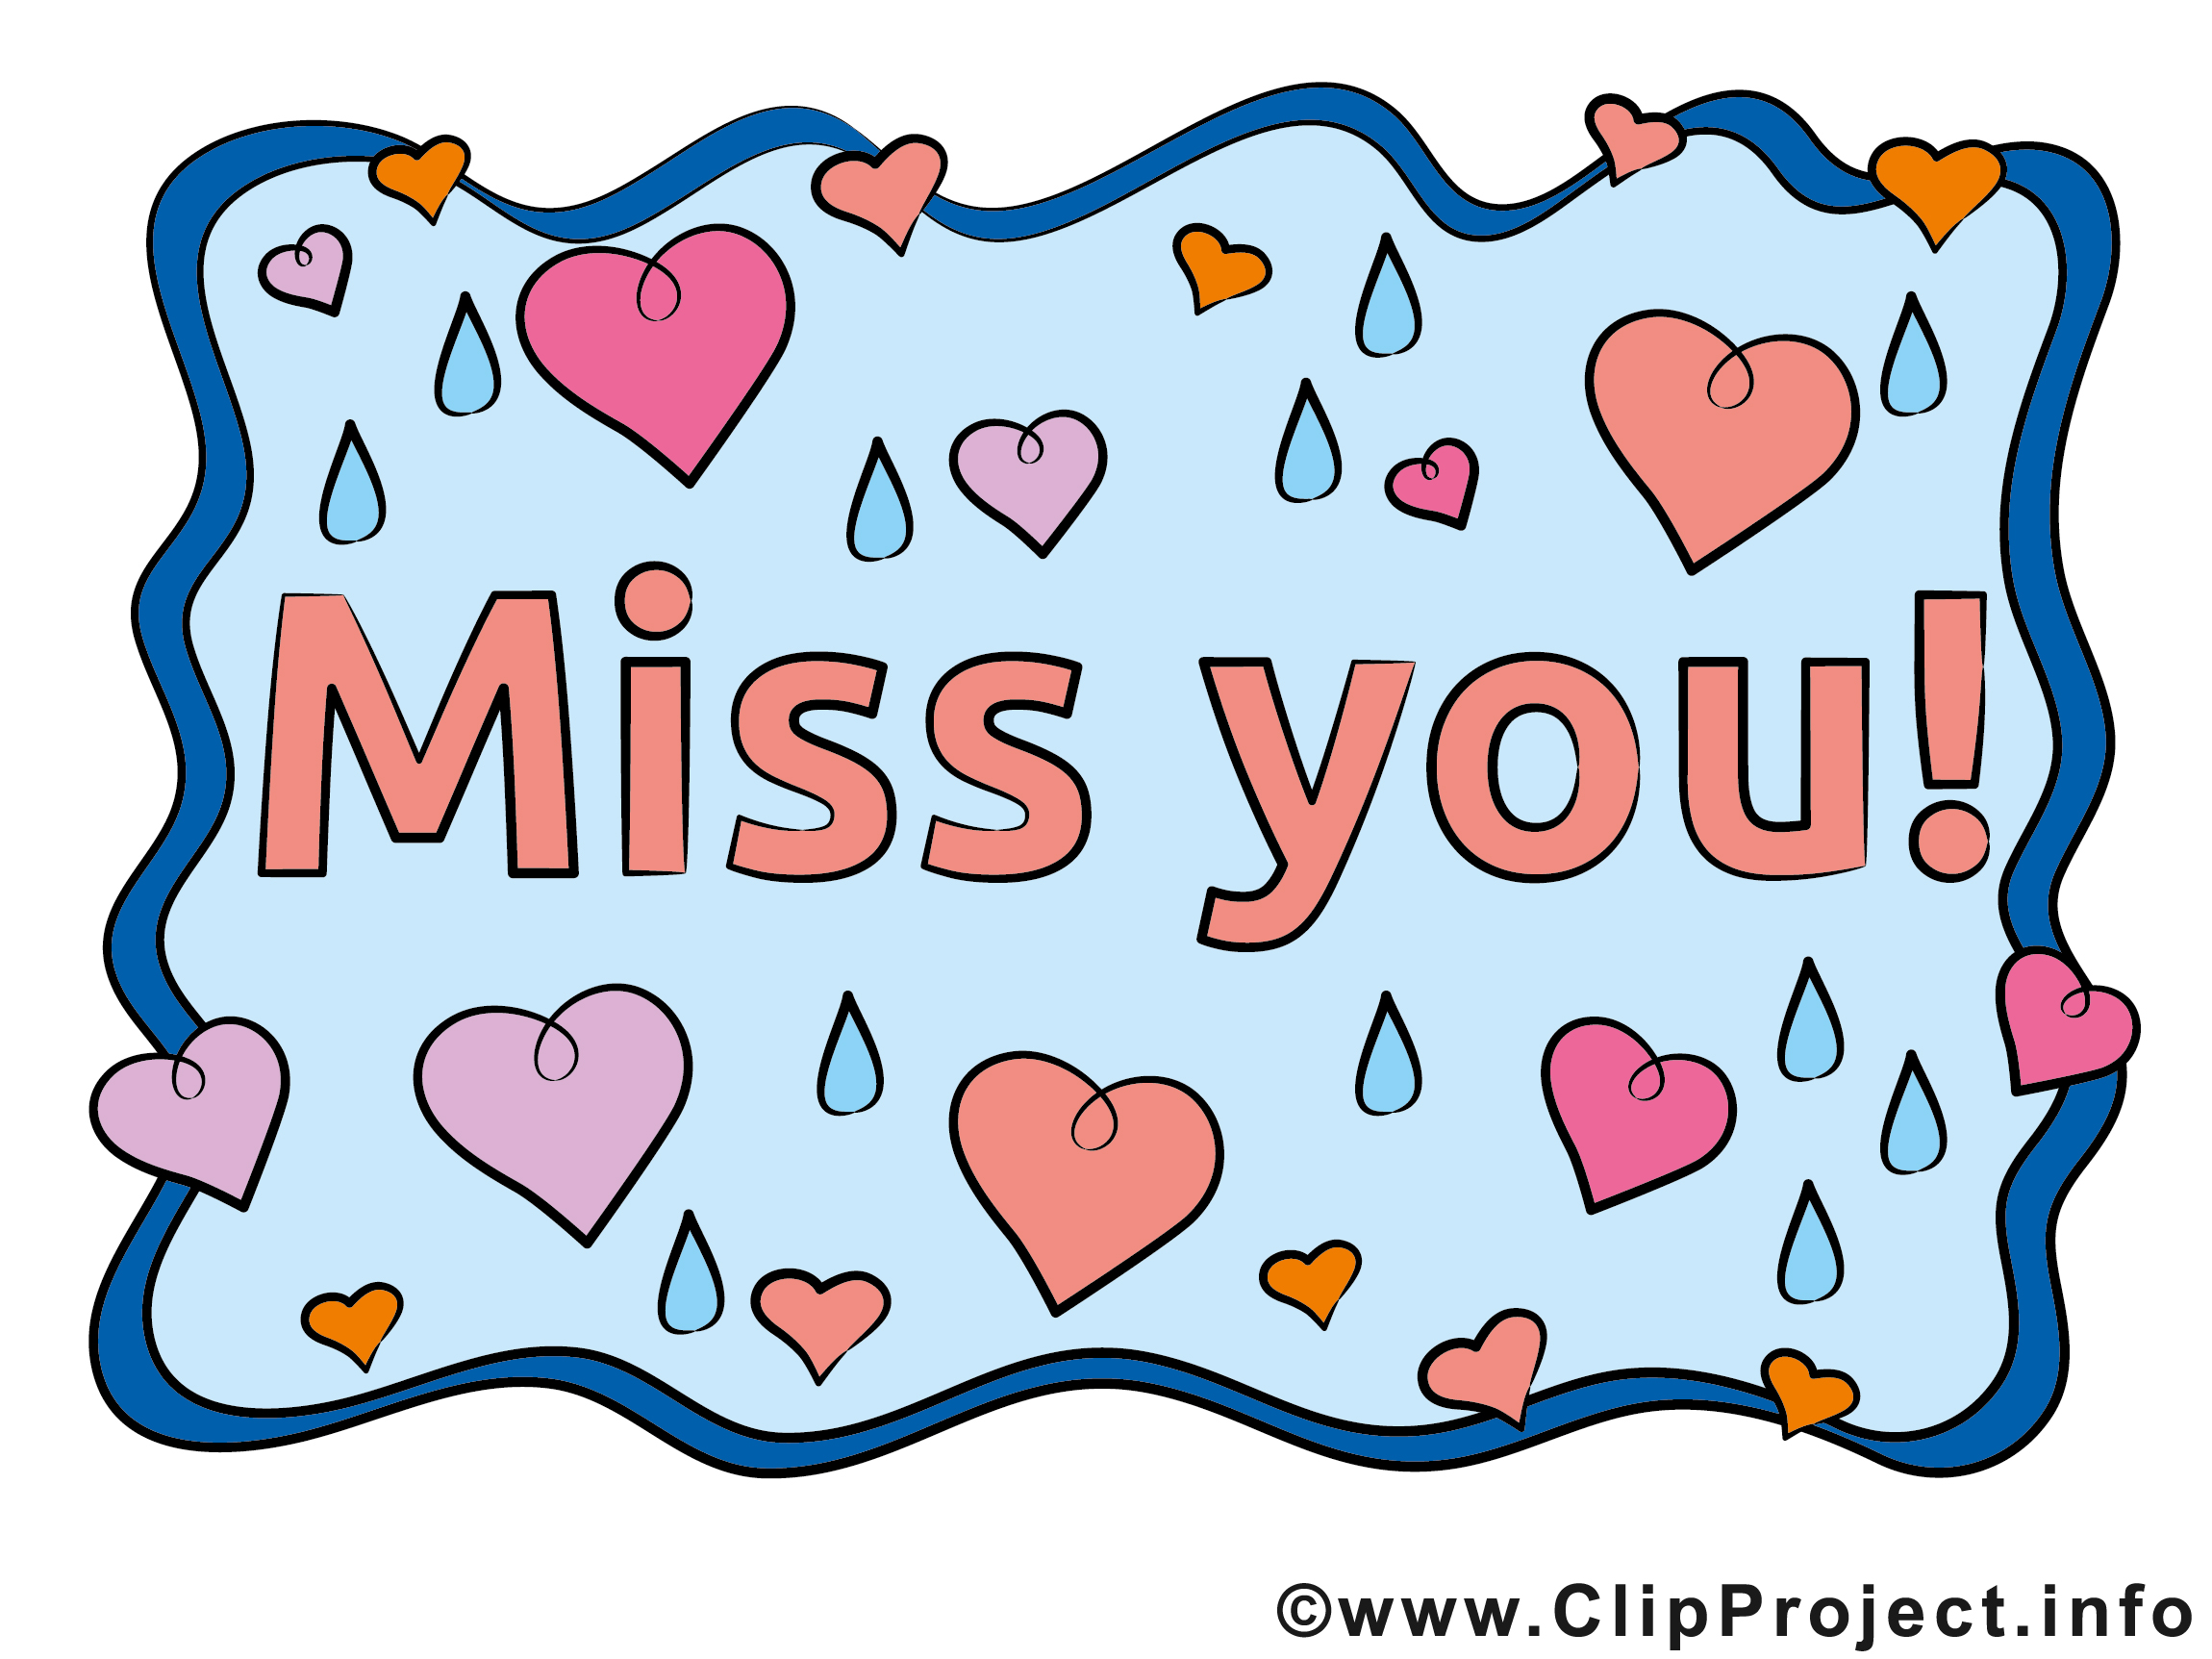 Bildtitel Miss You Karte Clipart free image.